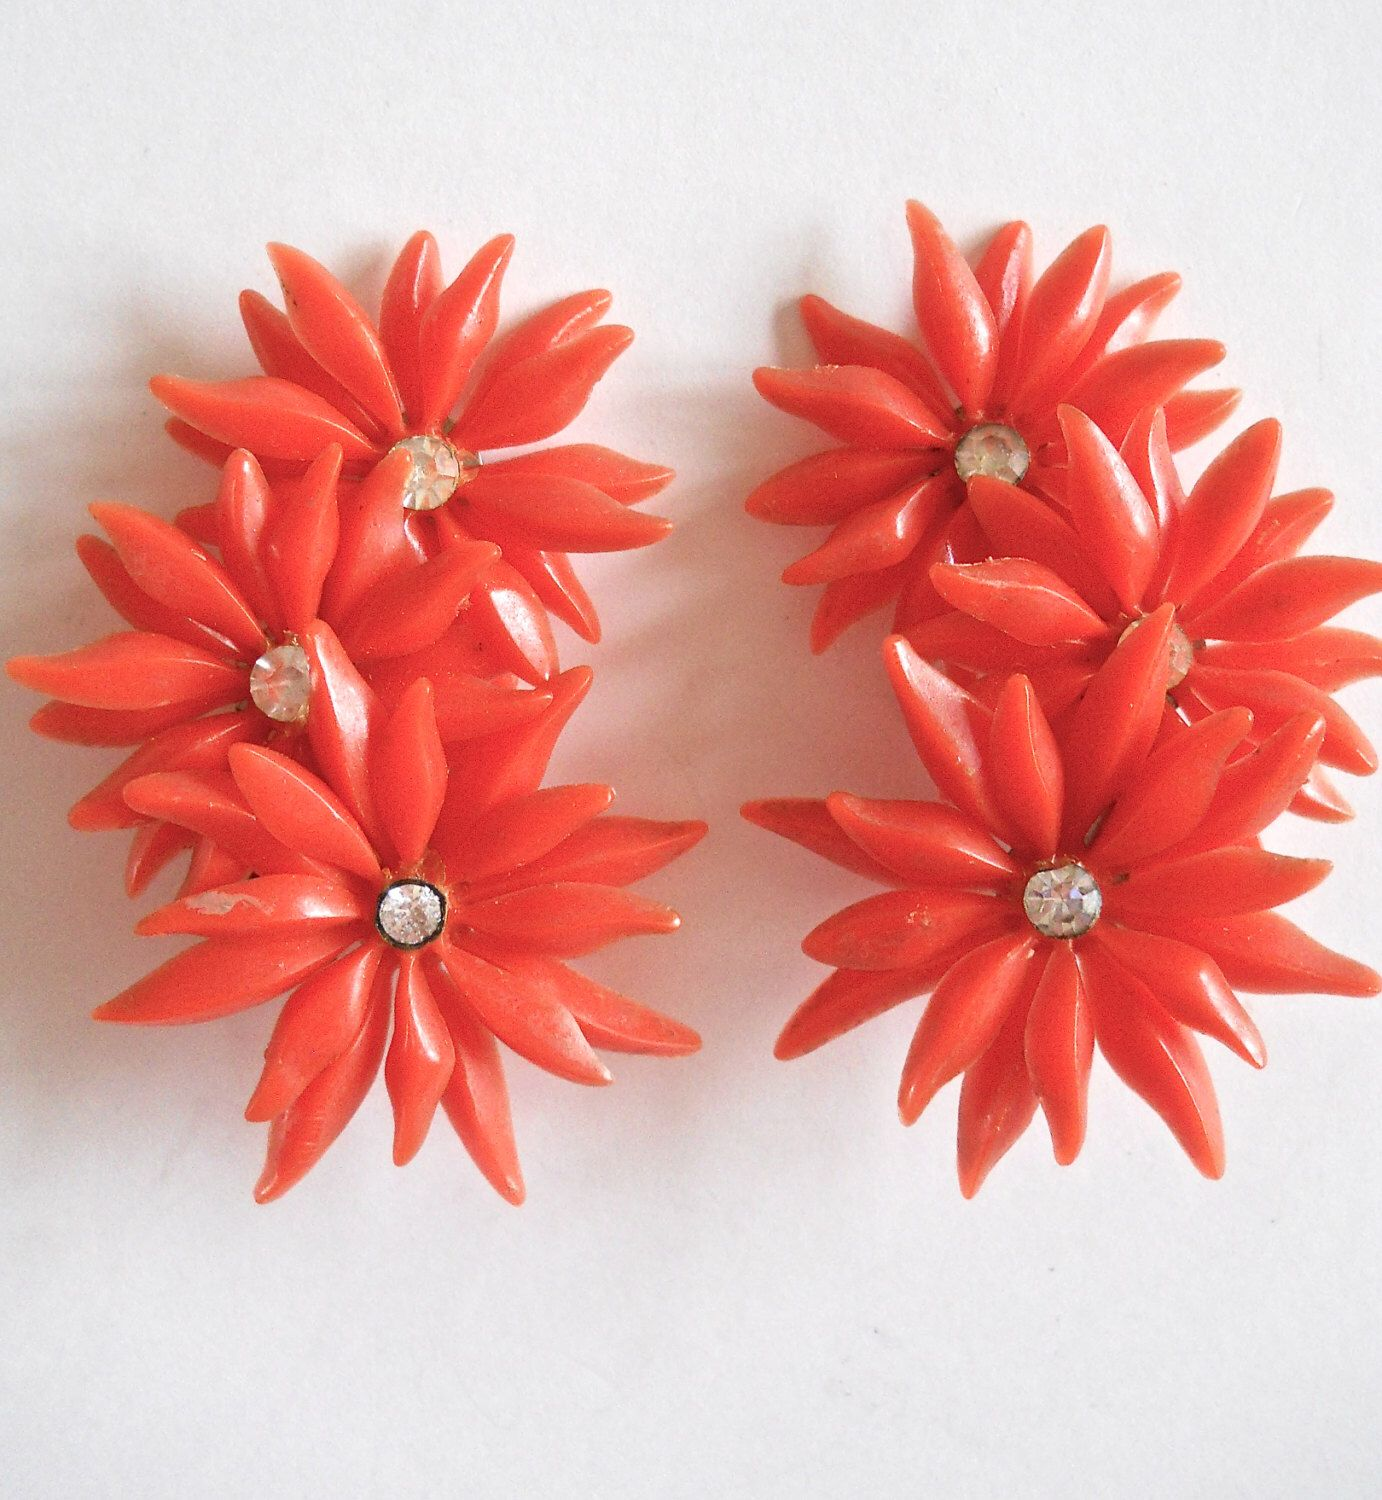 flower large ldn milk earrings tooth adbe products